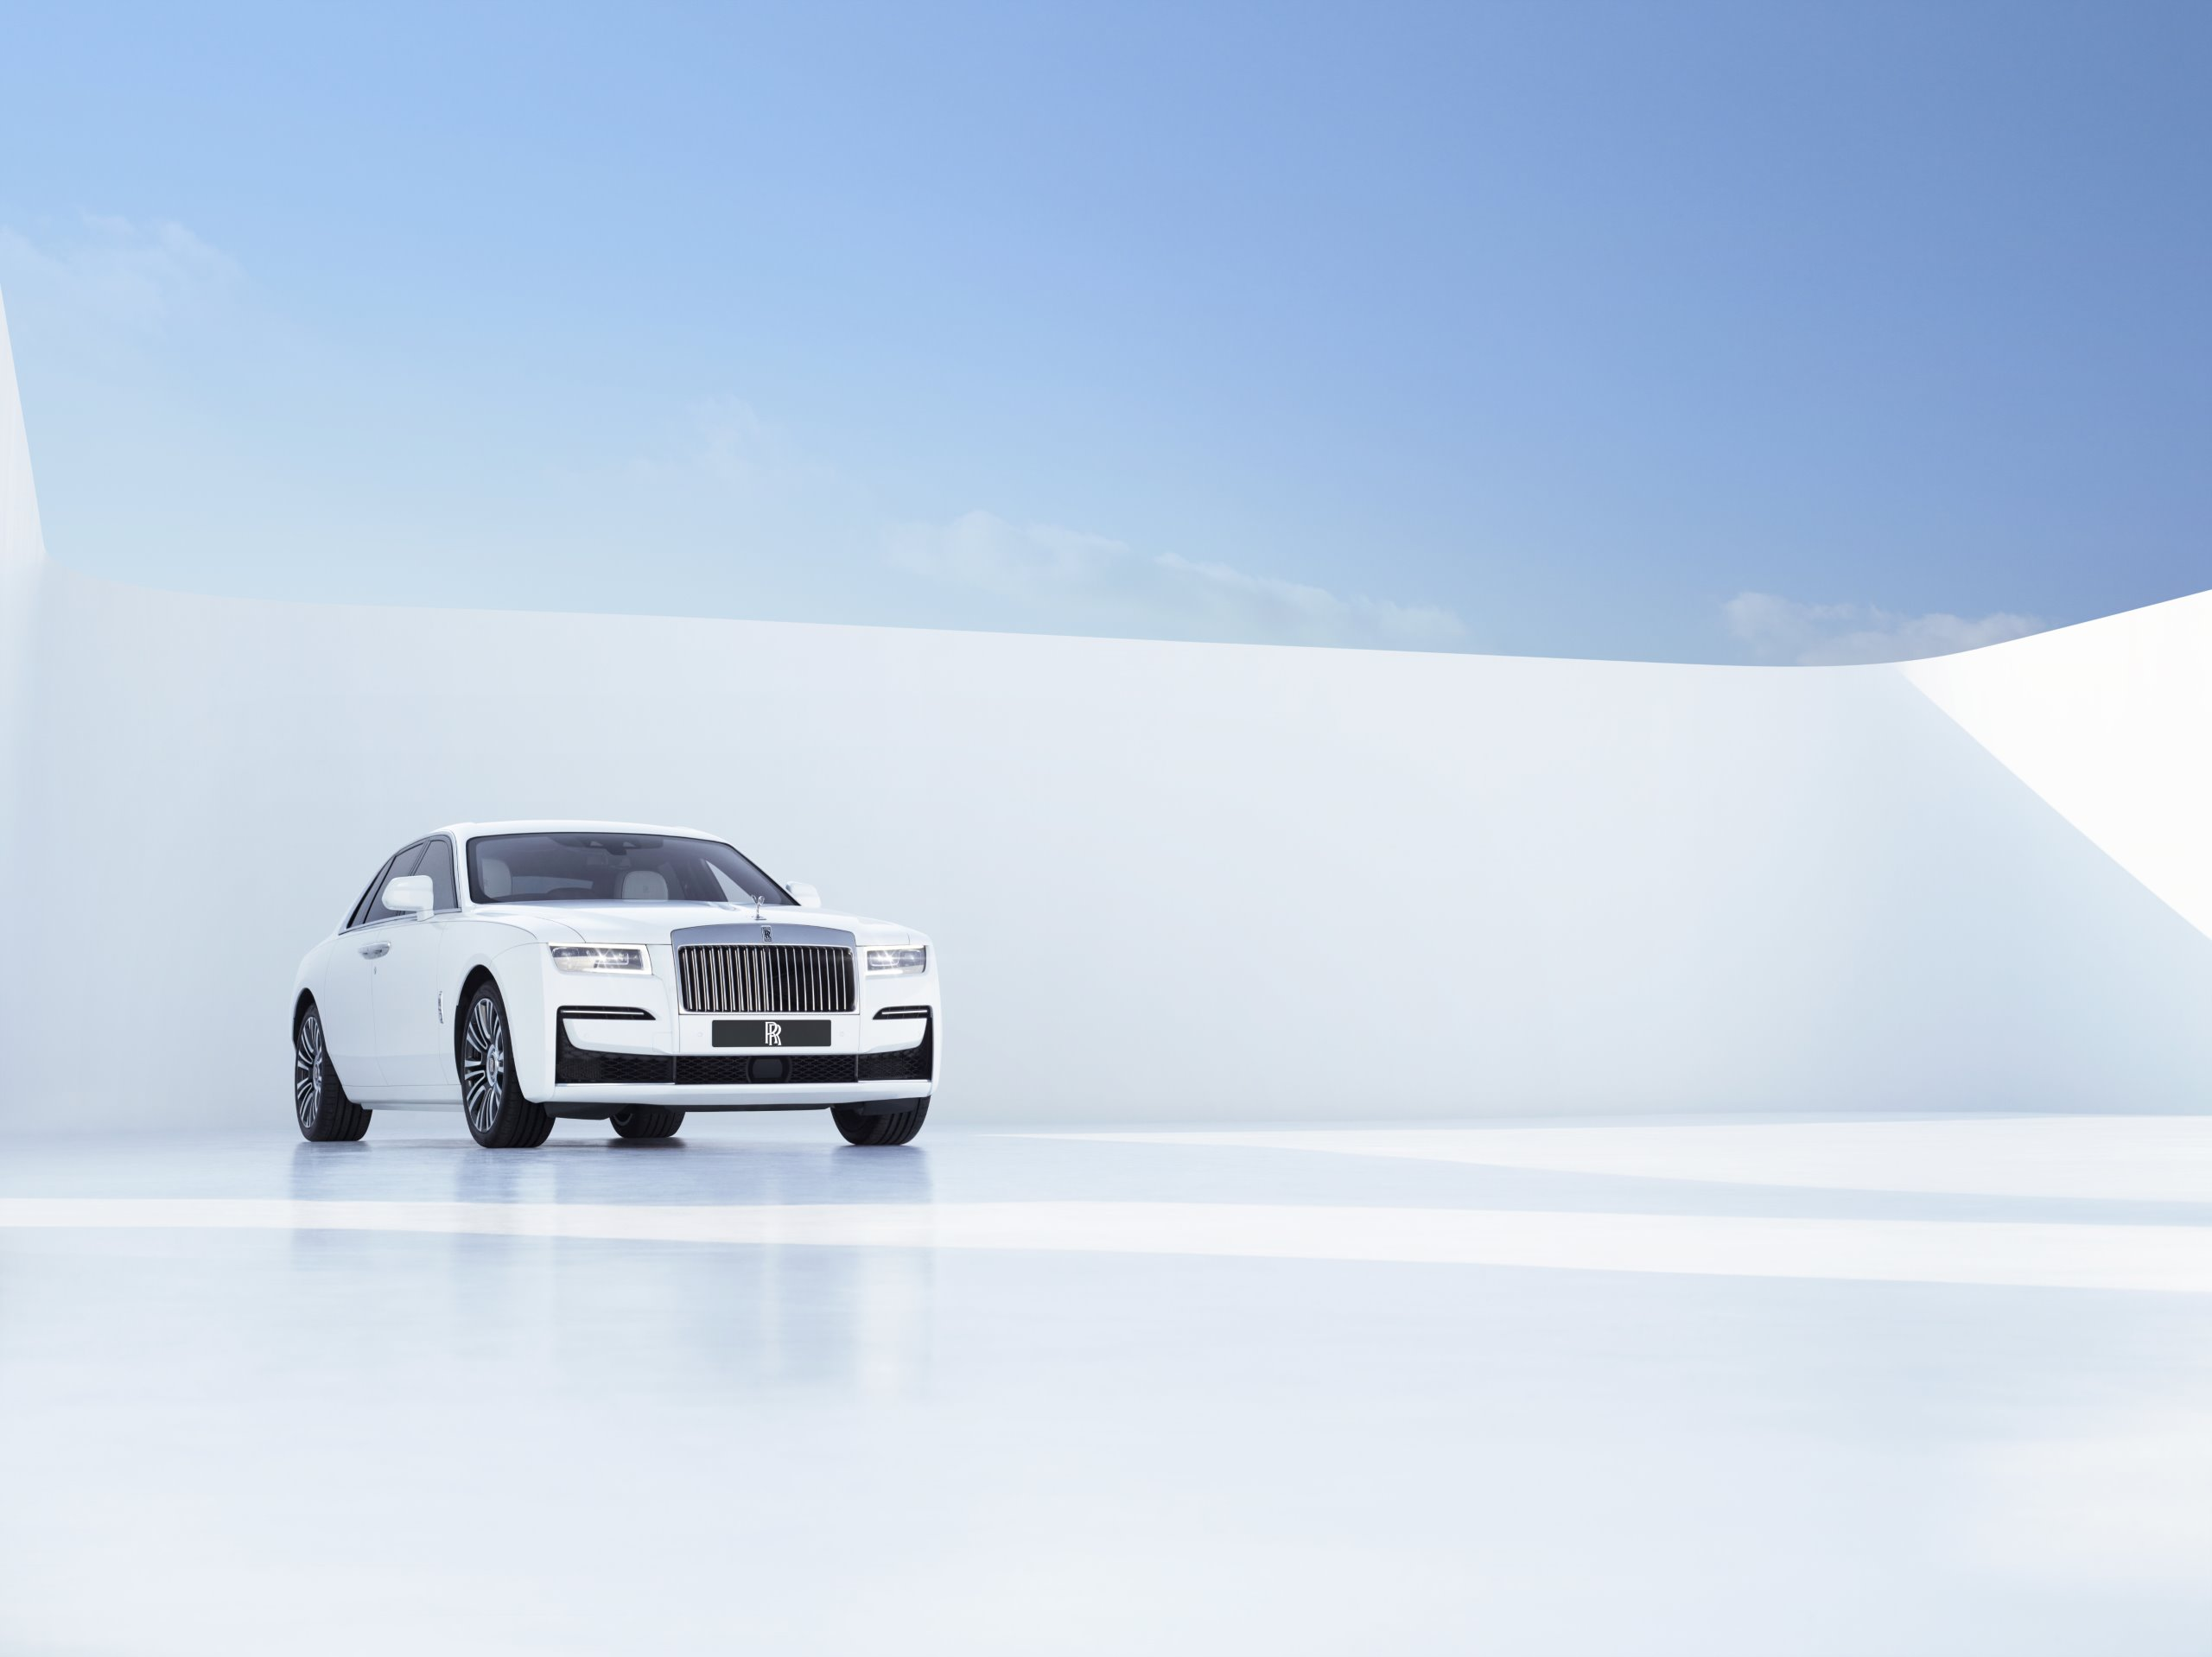 The New Rolls Royce Ghost Watch I Love